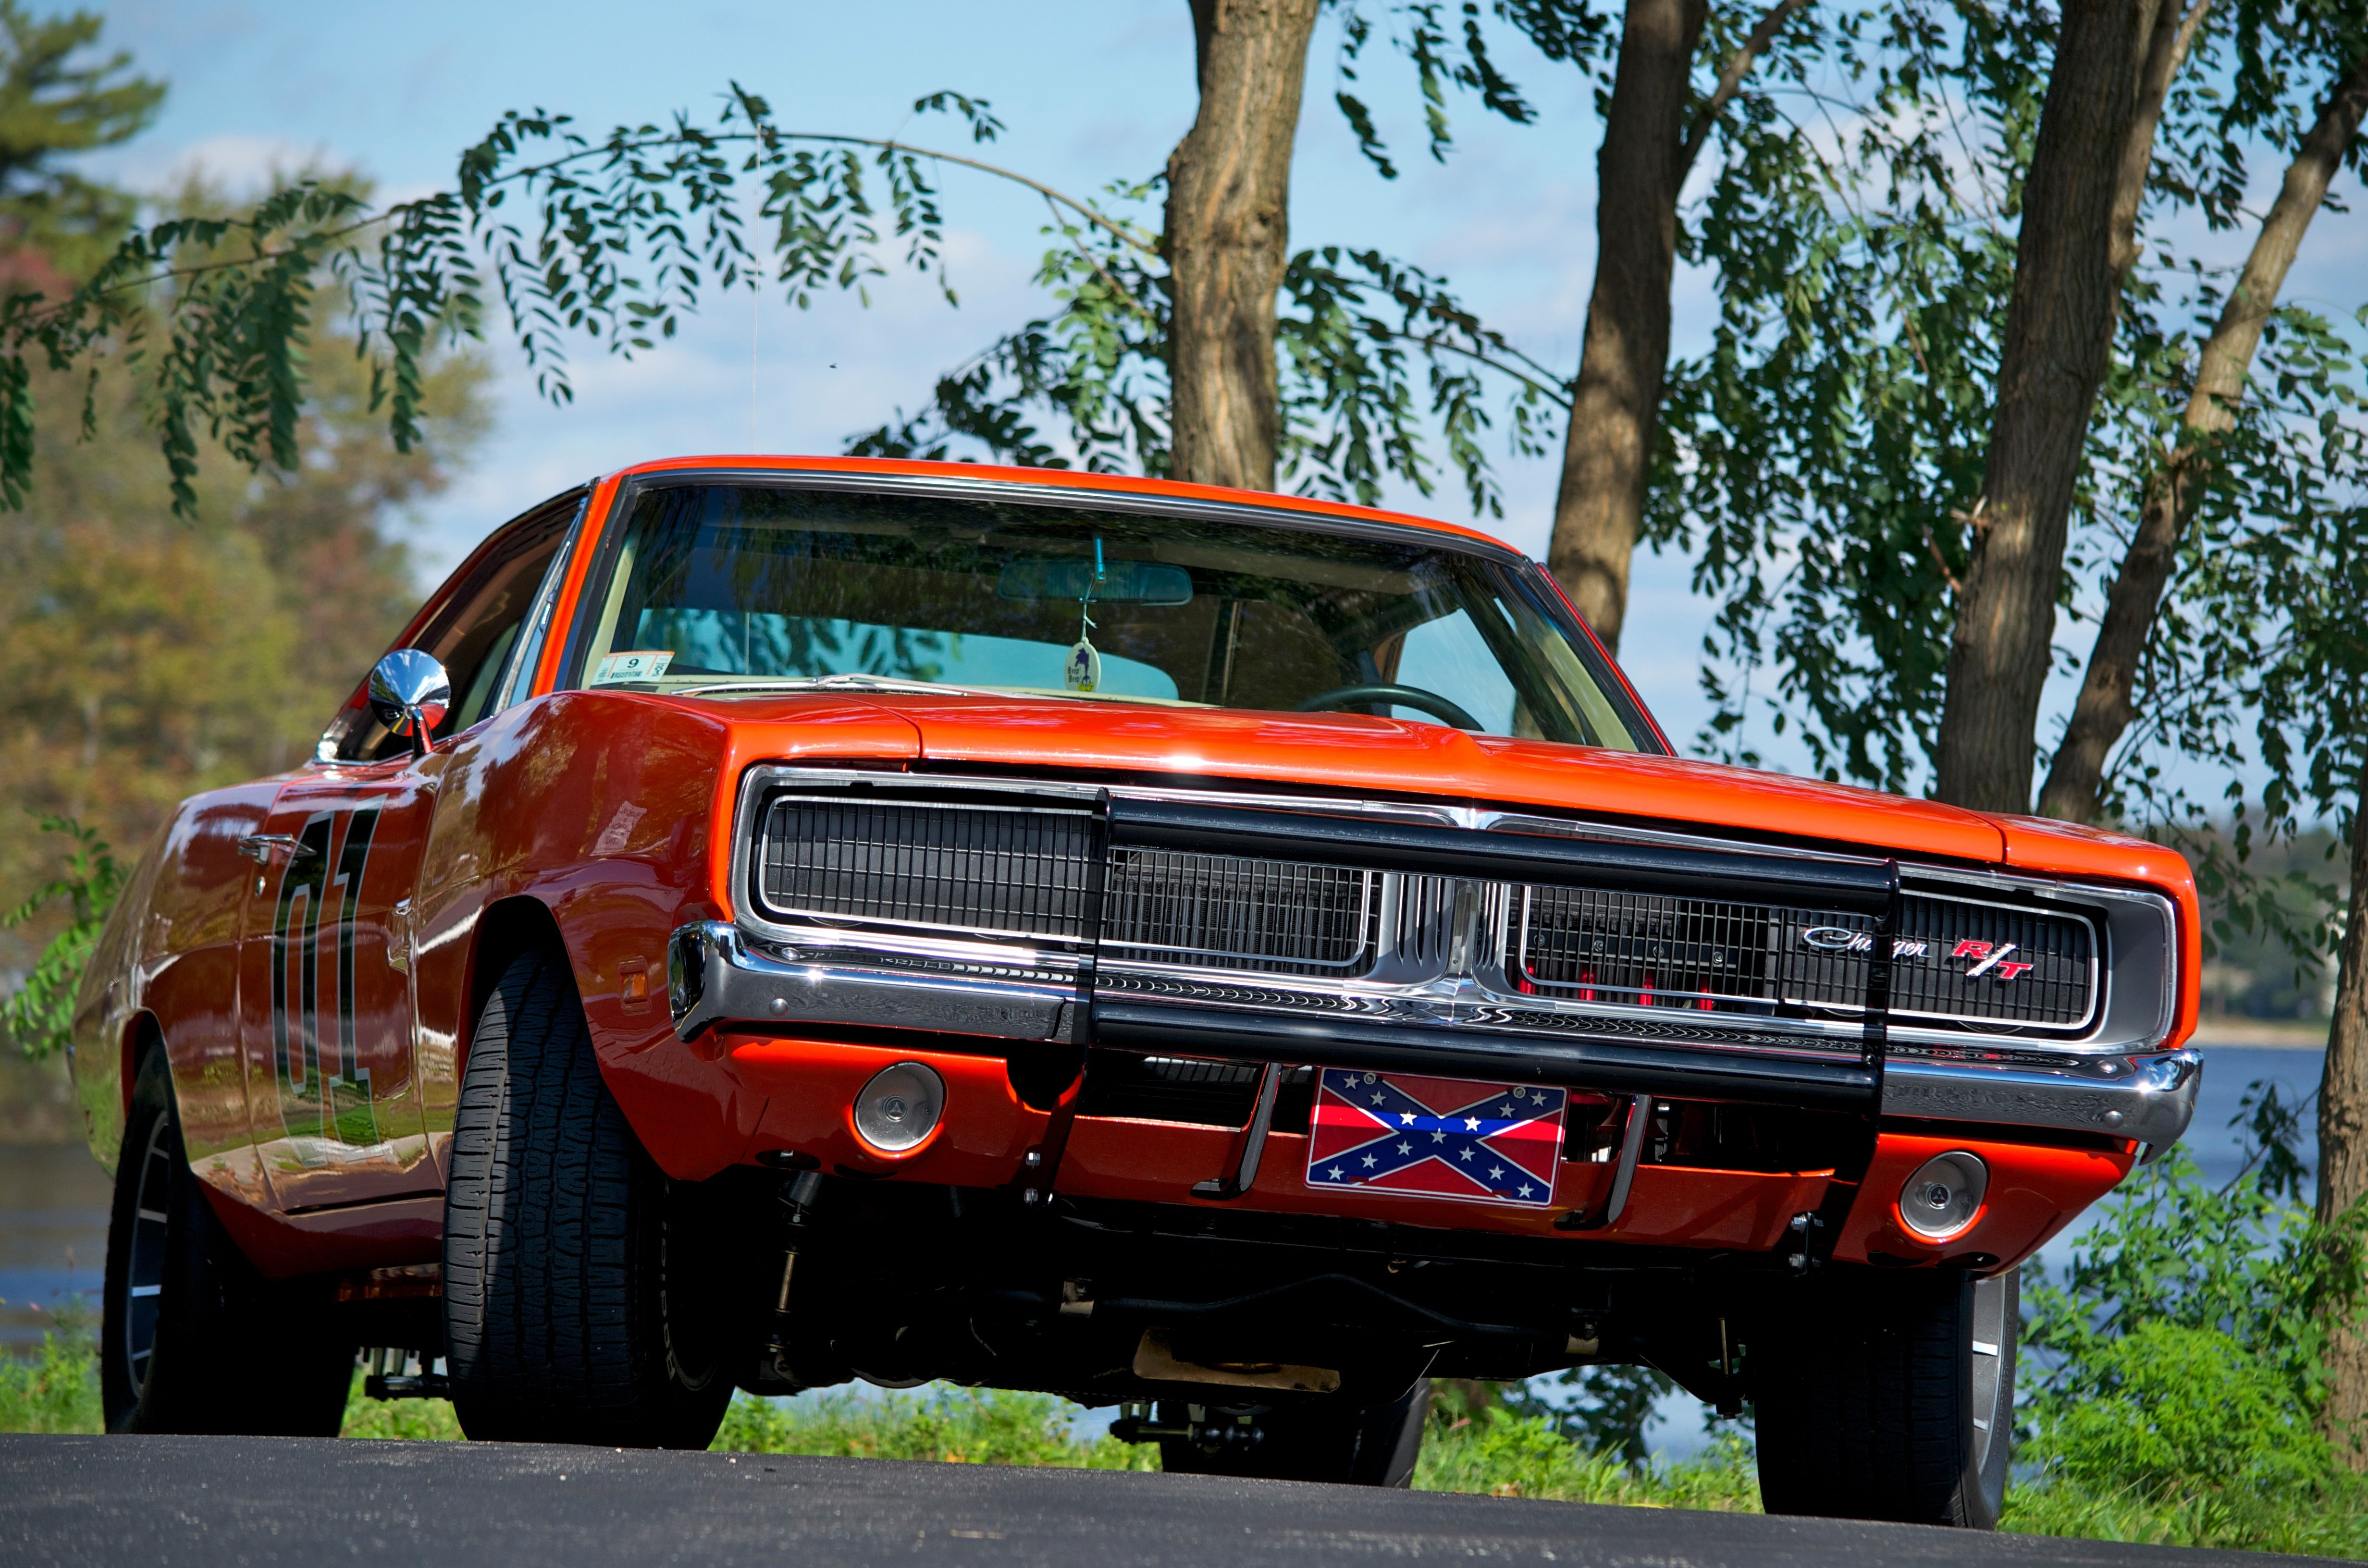 GENERAL LEE dukes hazzard dodge charger muscle hot rod rods television  series wallpaper | 4928x3264 | 289156 | WallpaperUP